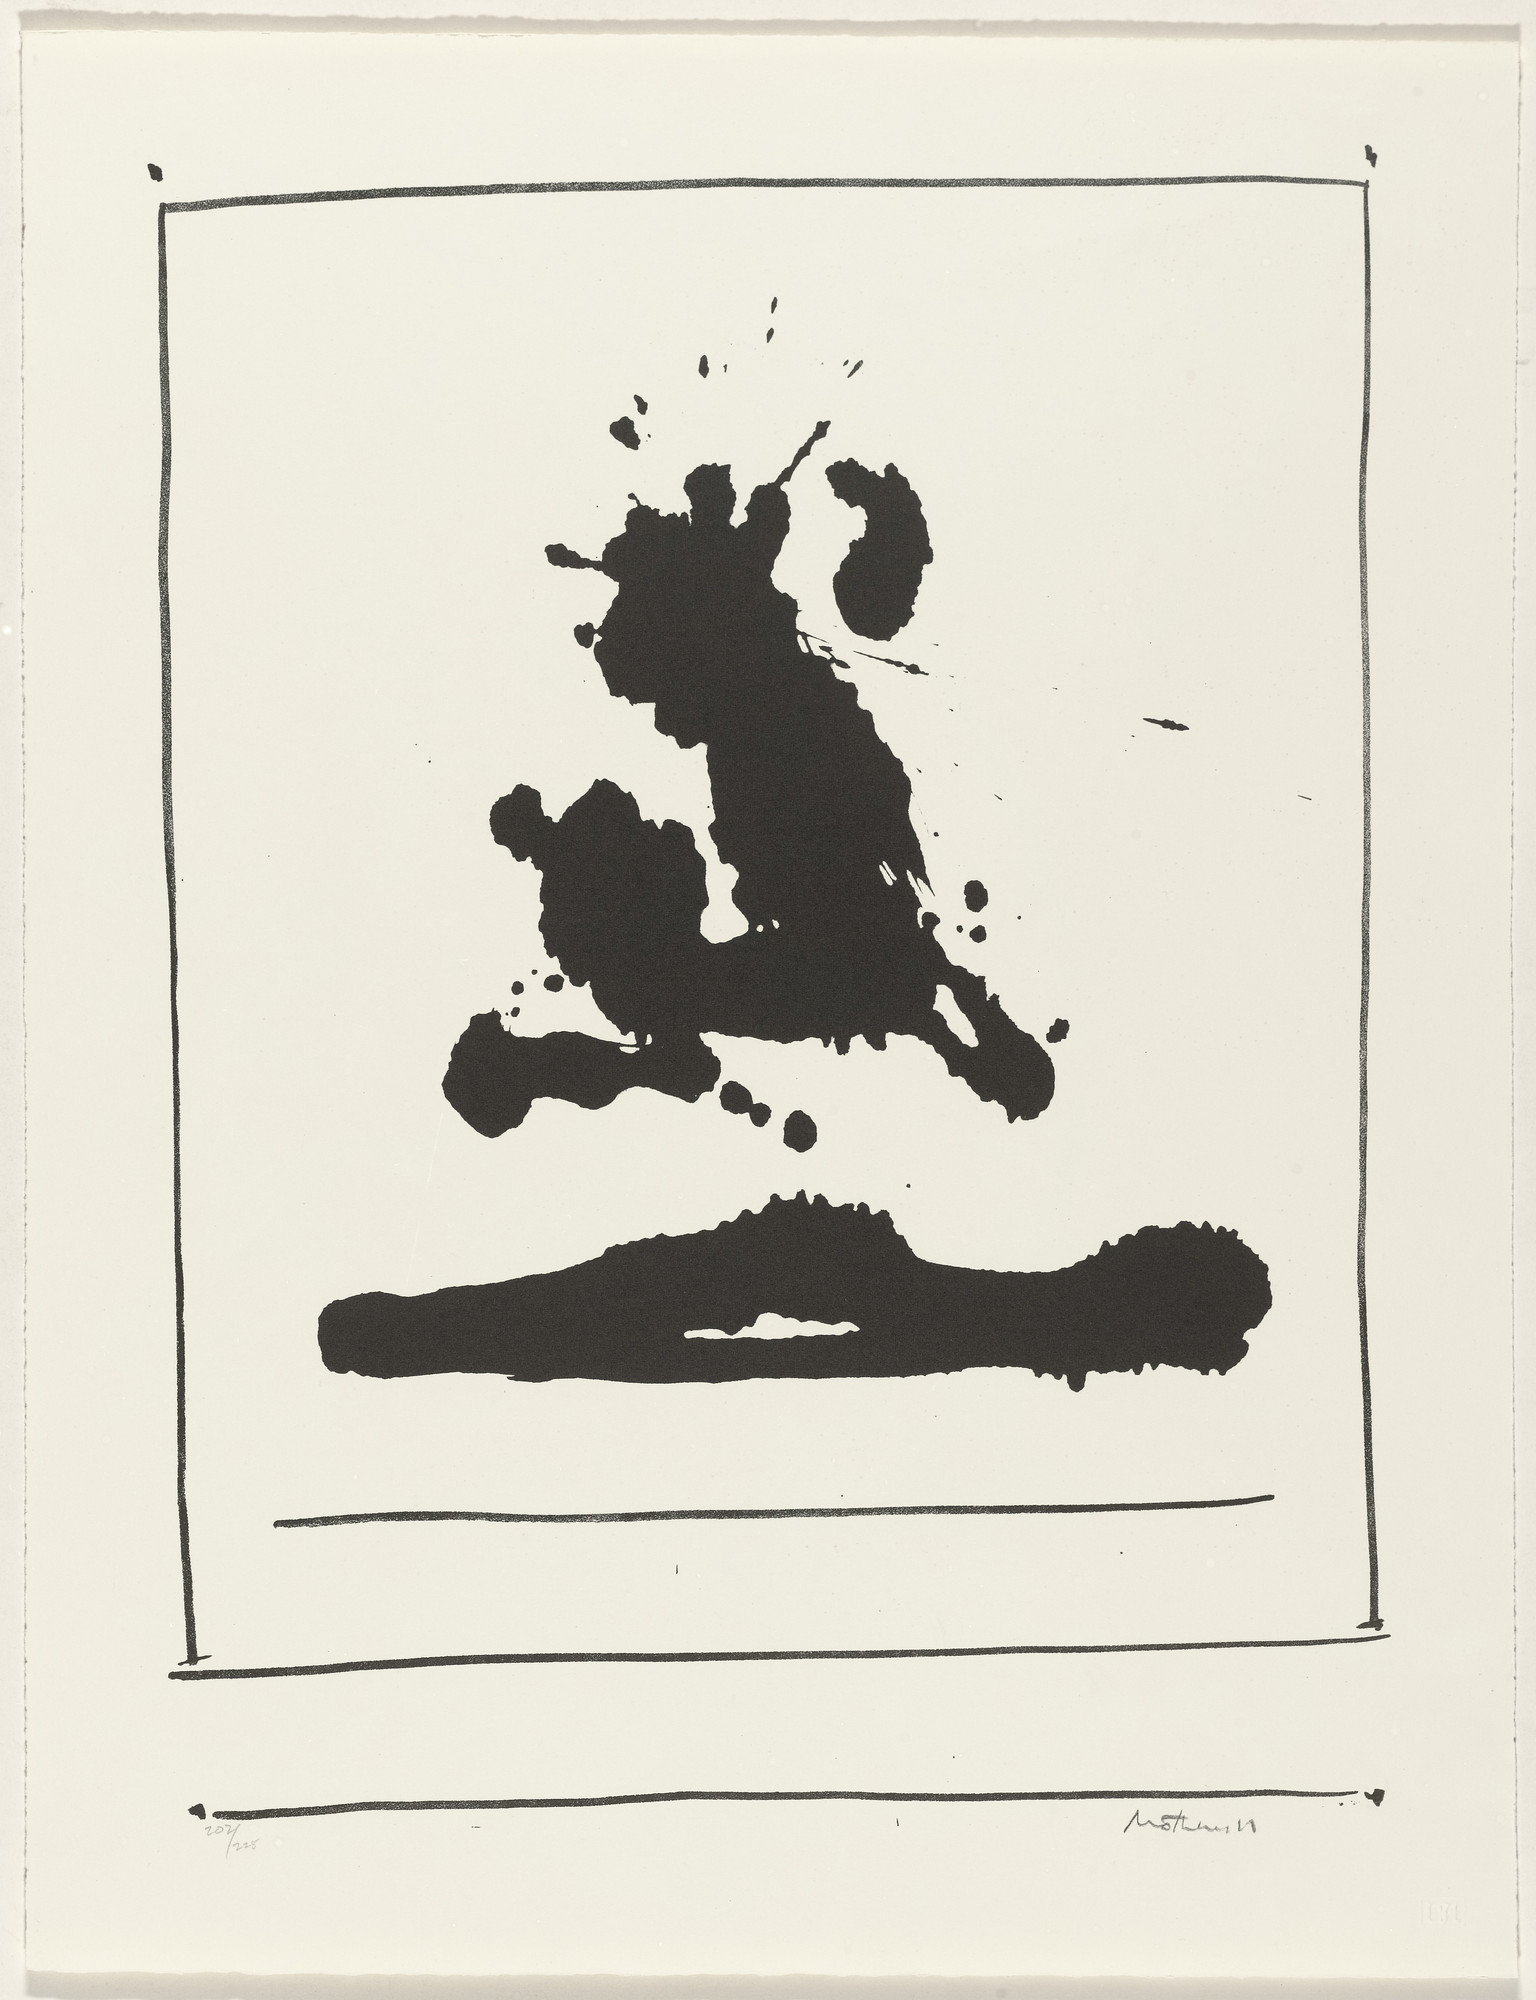 Robert Motherwell. Untitled from New York International. 1966